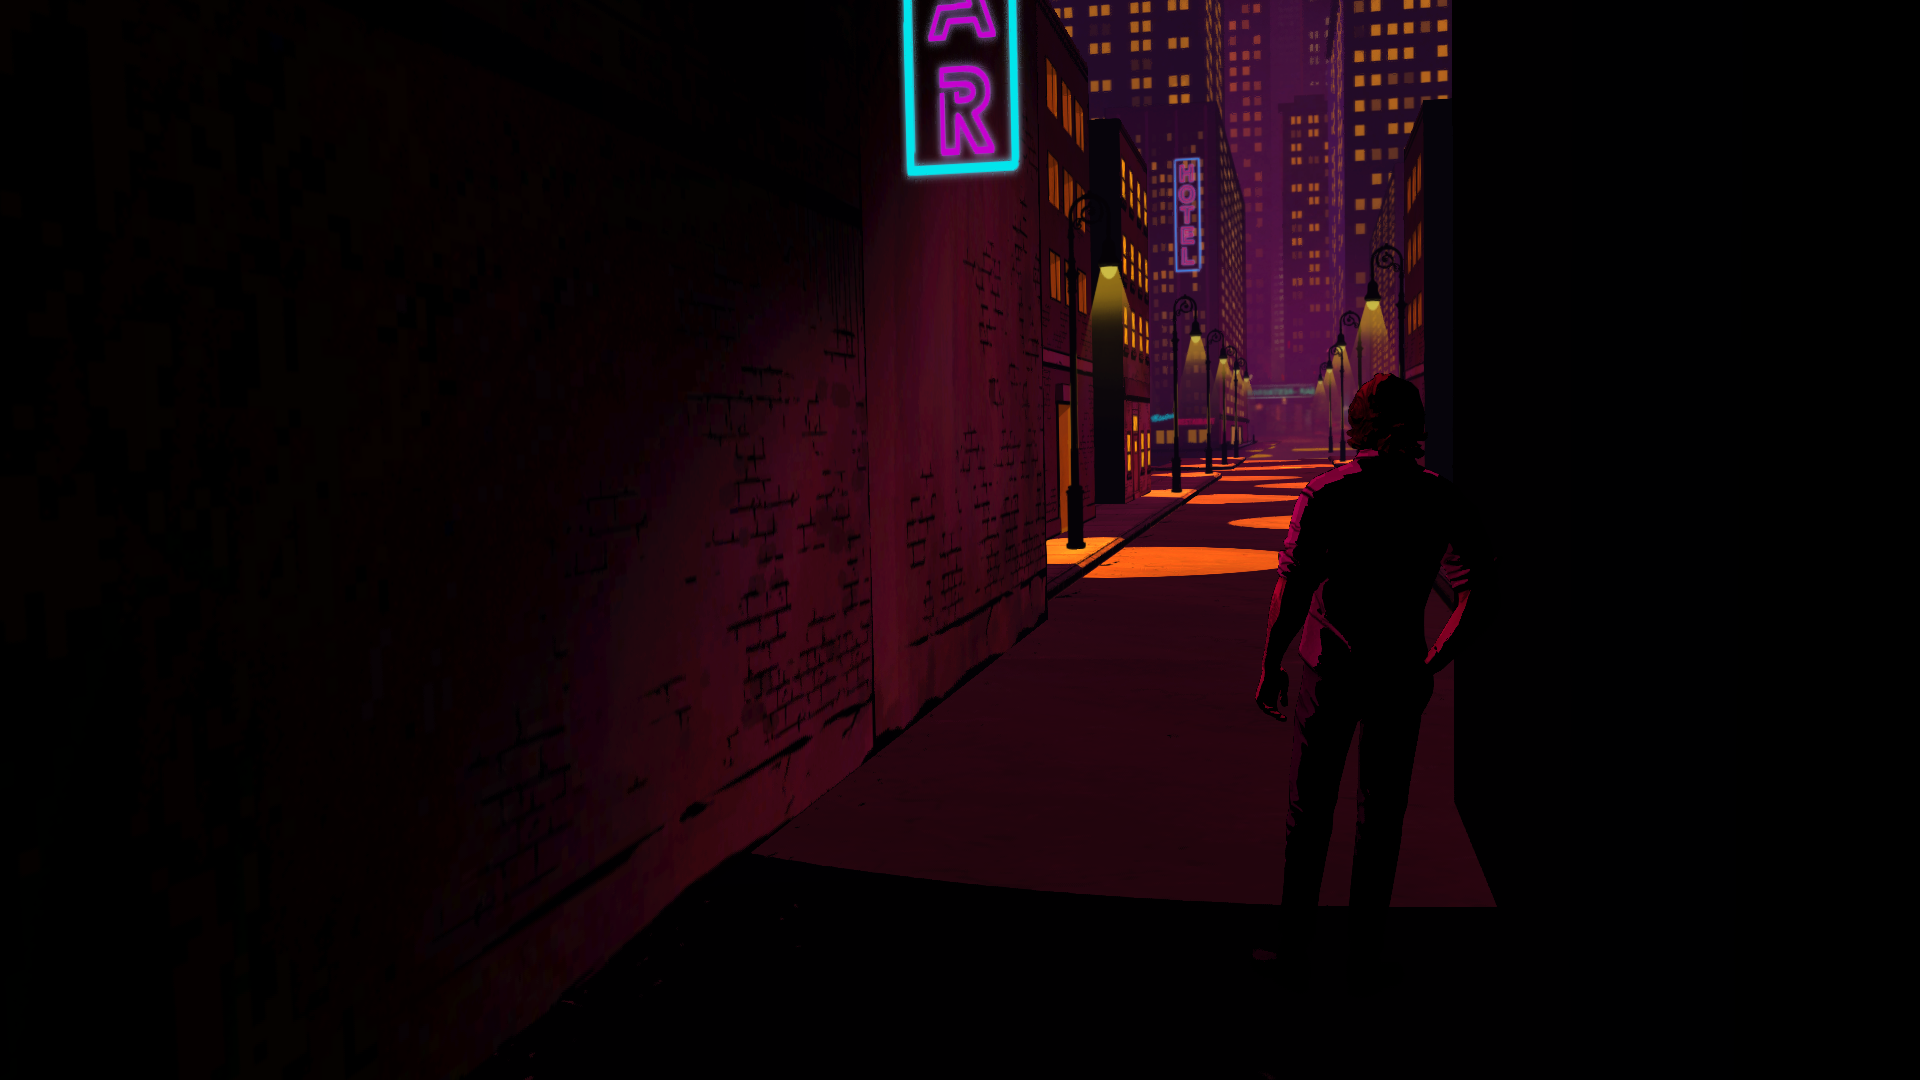 The Wolf Among Us The Wolf Among Us Hd Wallpaper Computer Tower